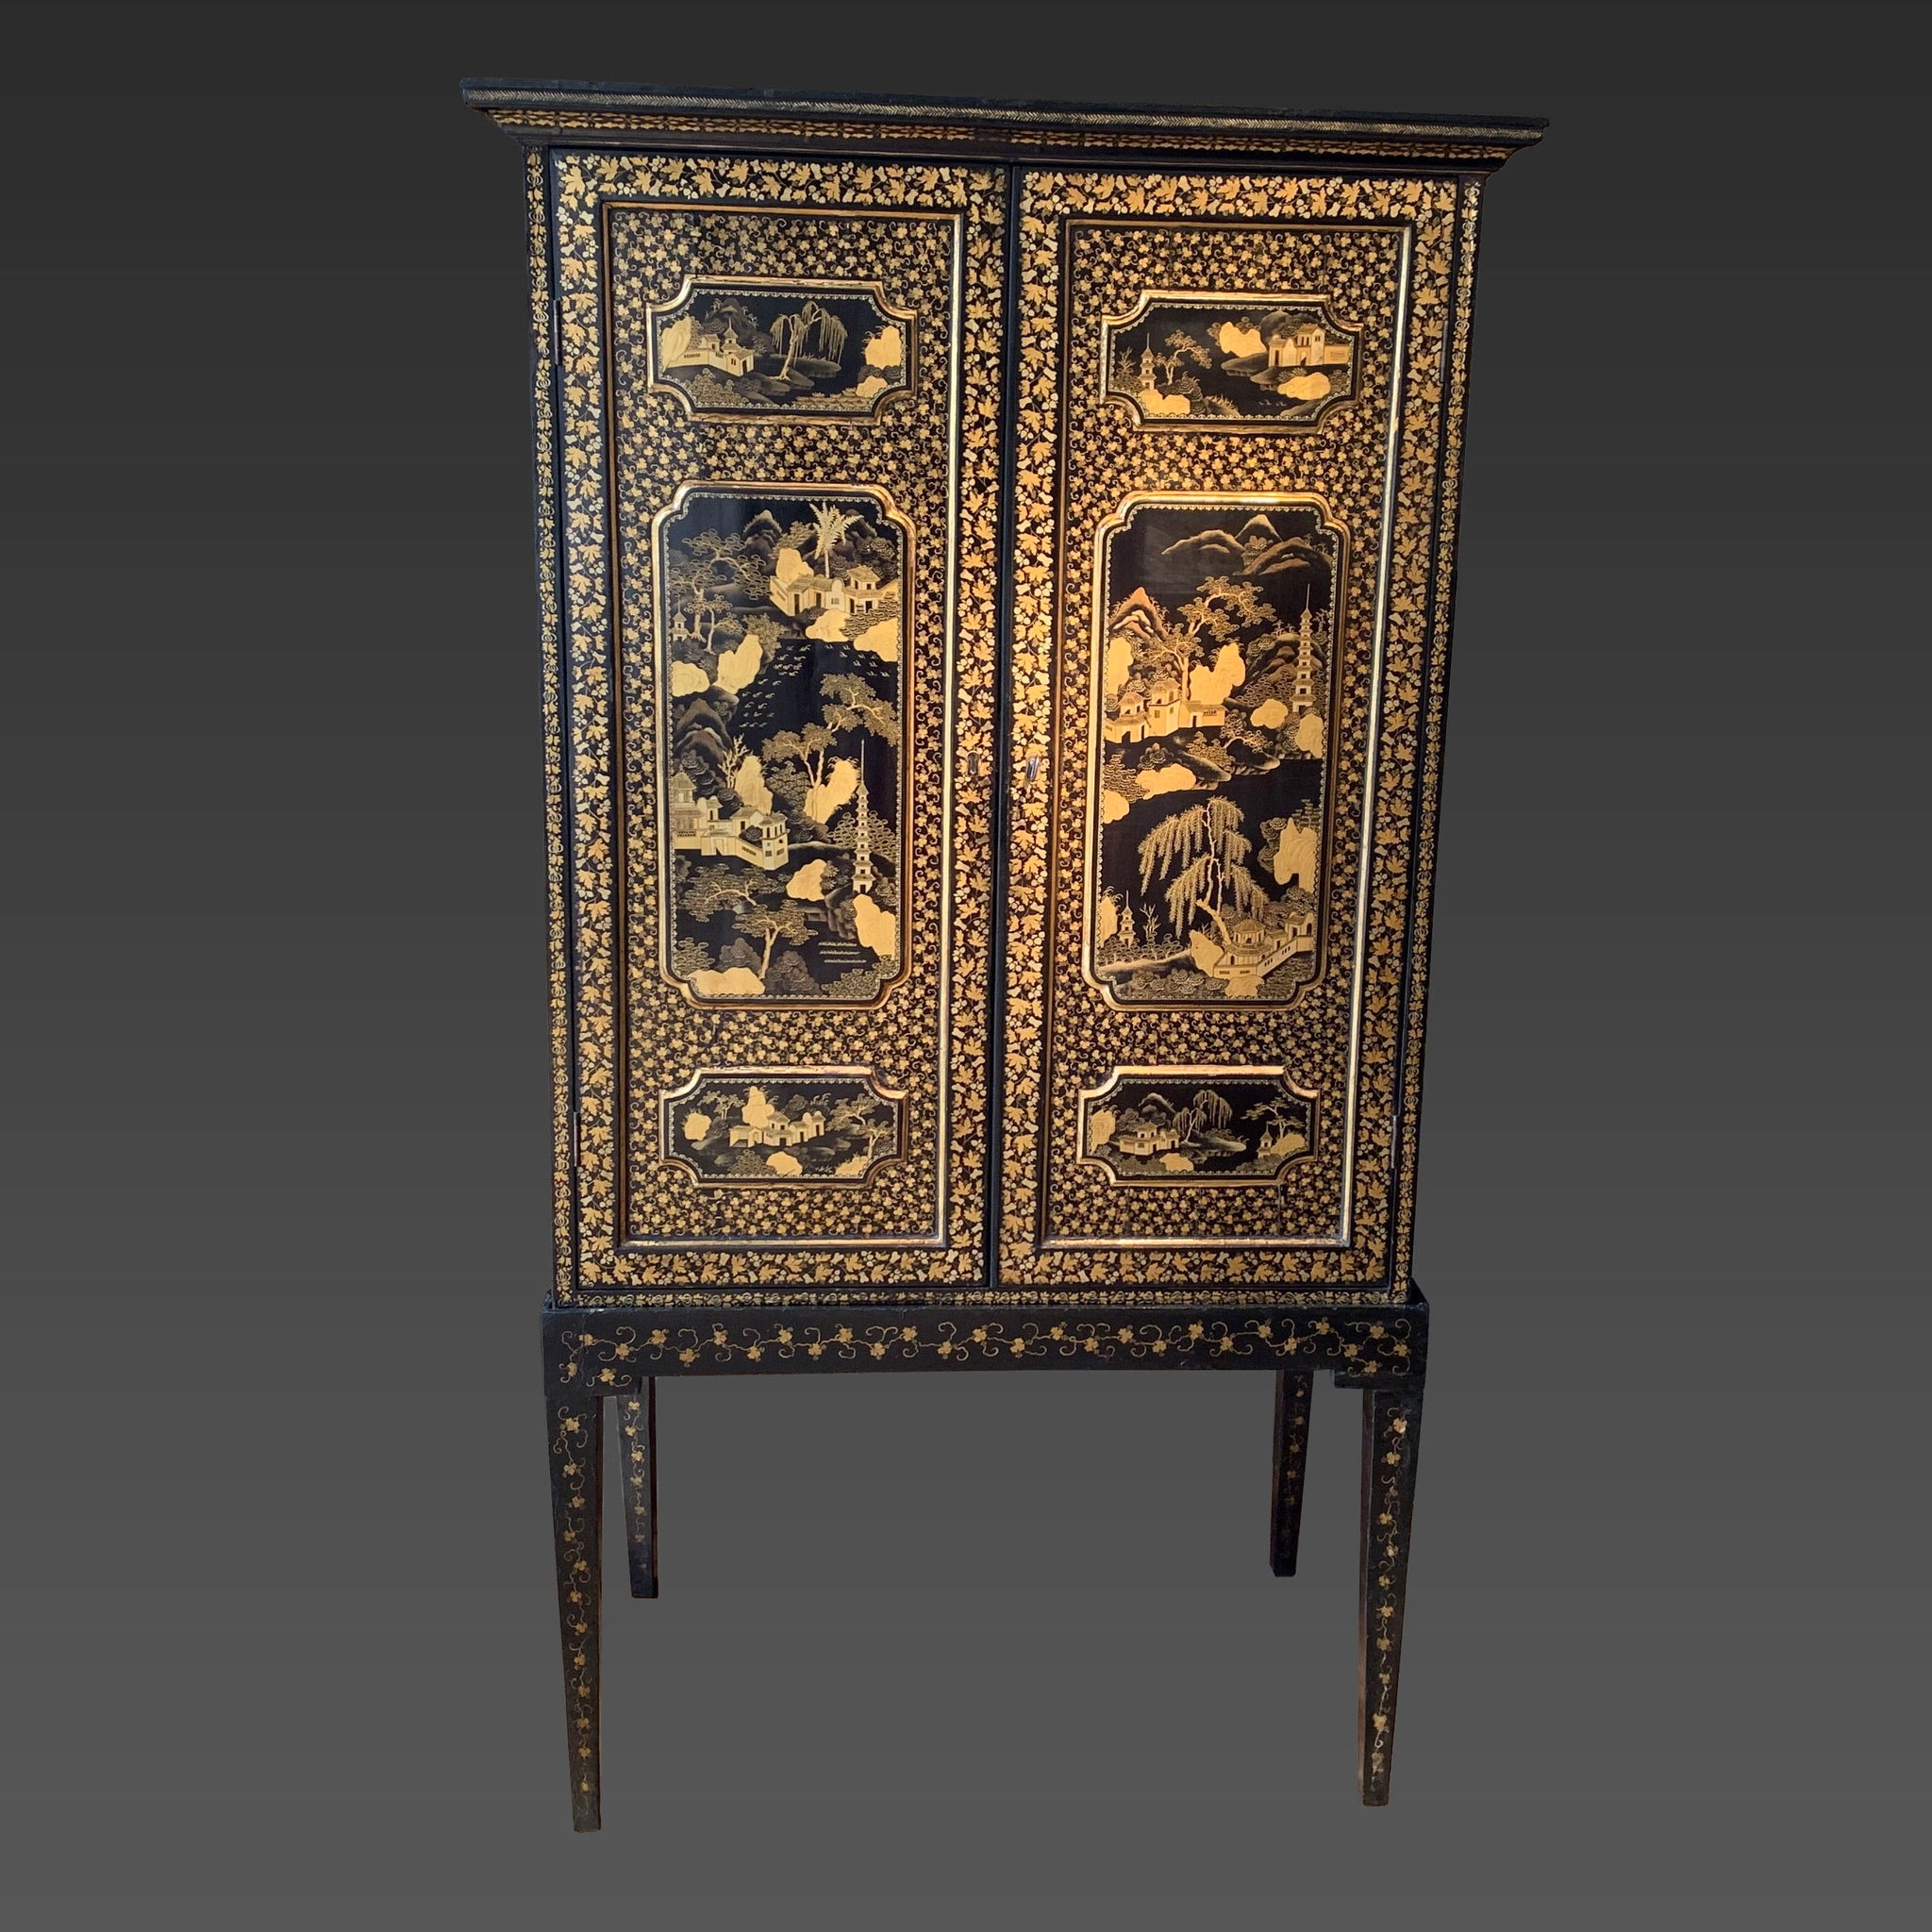 Chinese Export Lacquer Cabinet on Stand